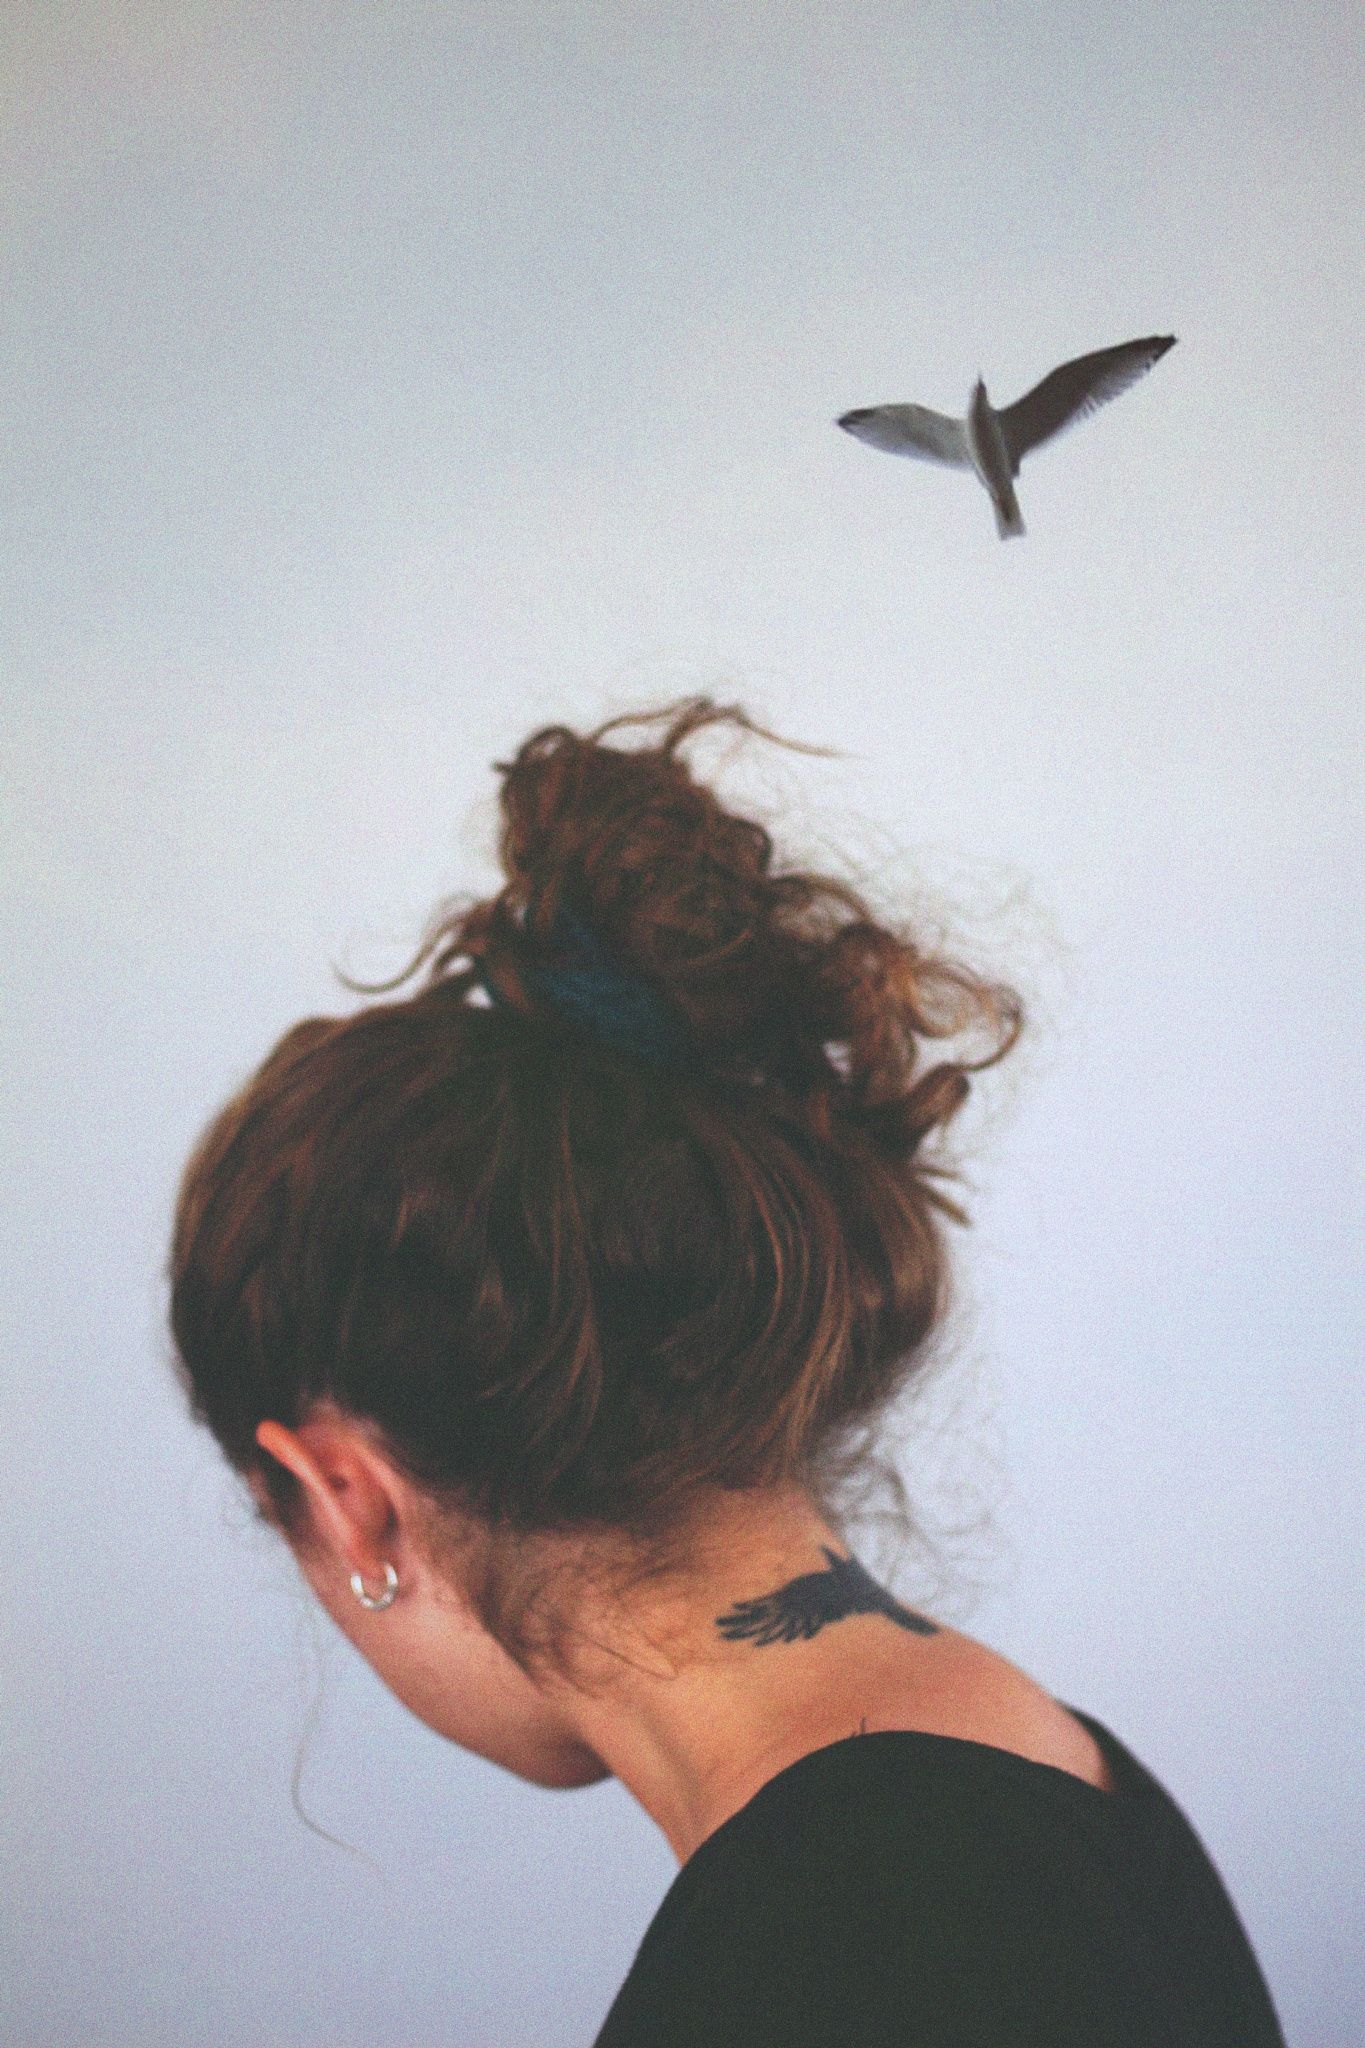 Bird neck tattoo kim bourque is sharing some inspiration on youpic